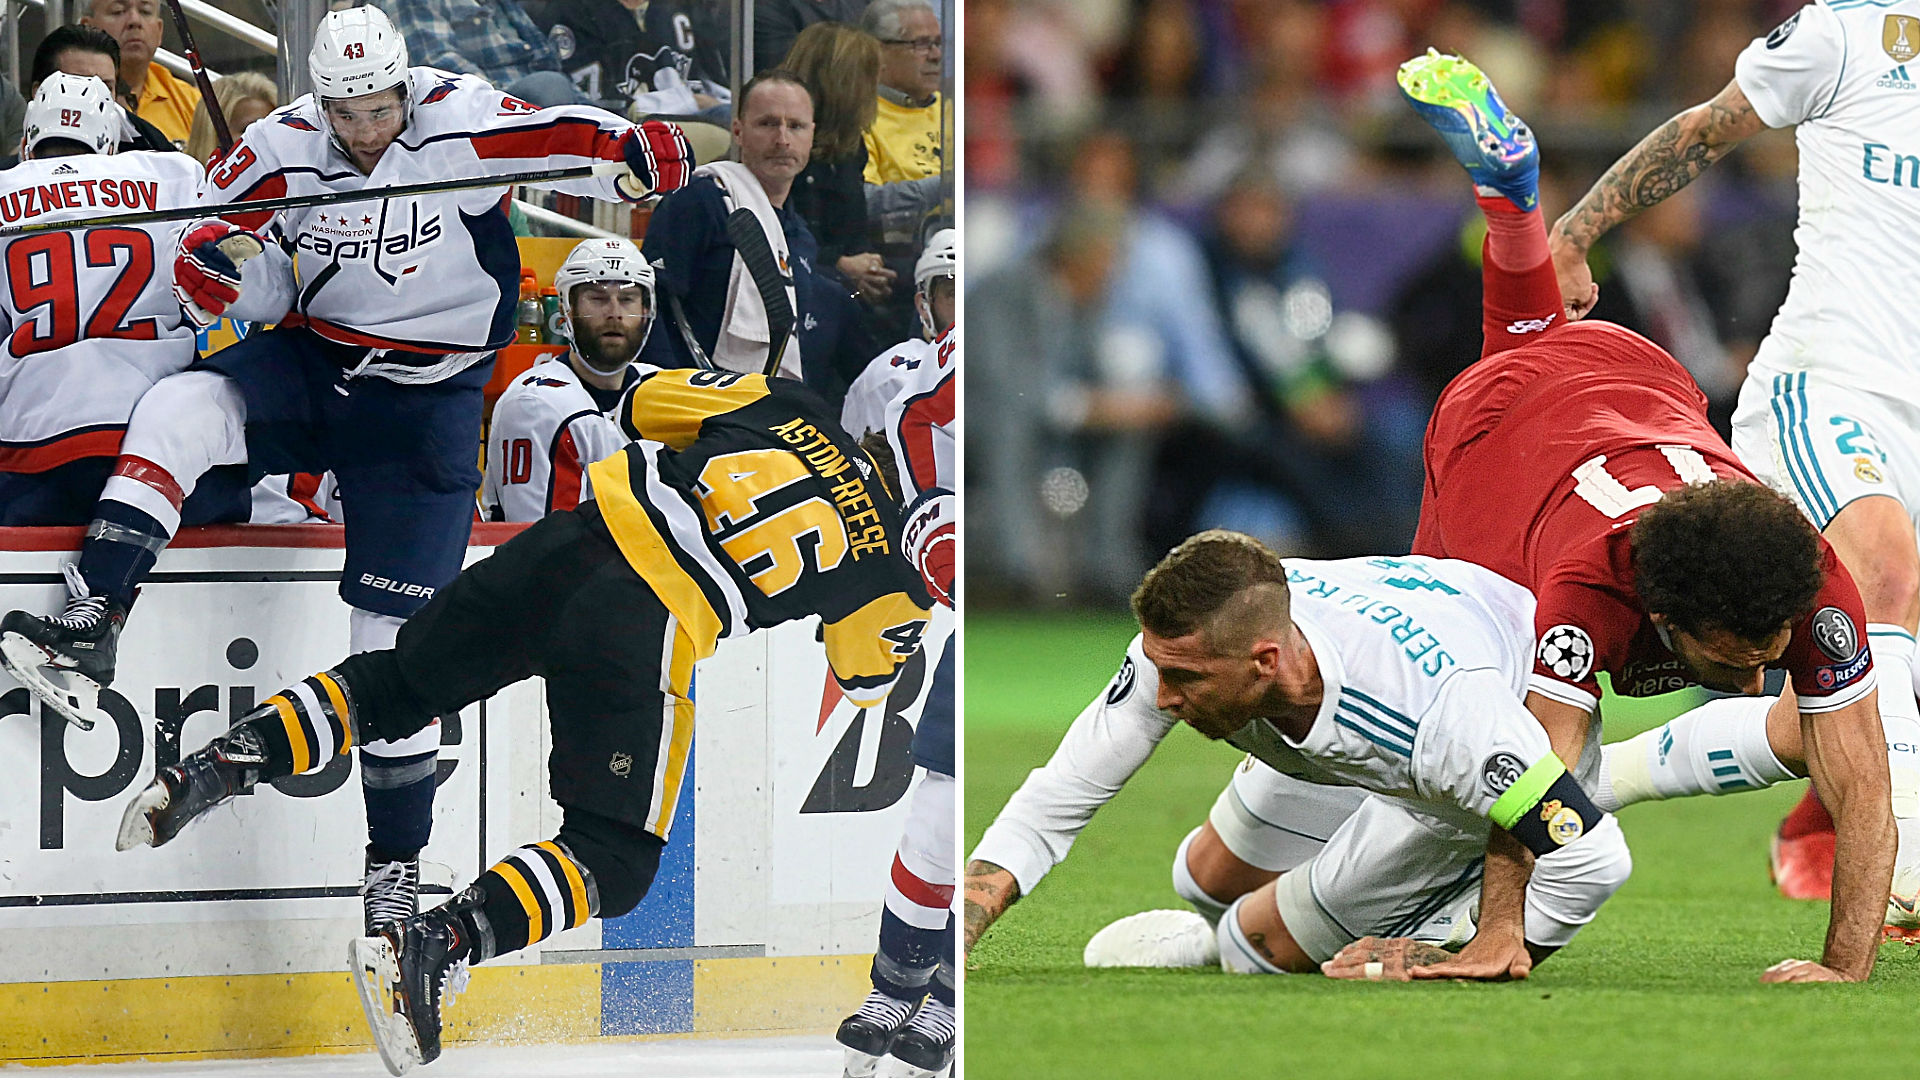 Tom Wilson, Sergio Ramos show if you're not breaking rules, you're not doing it right